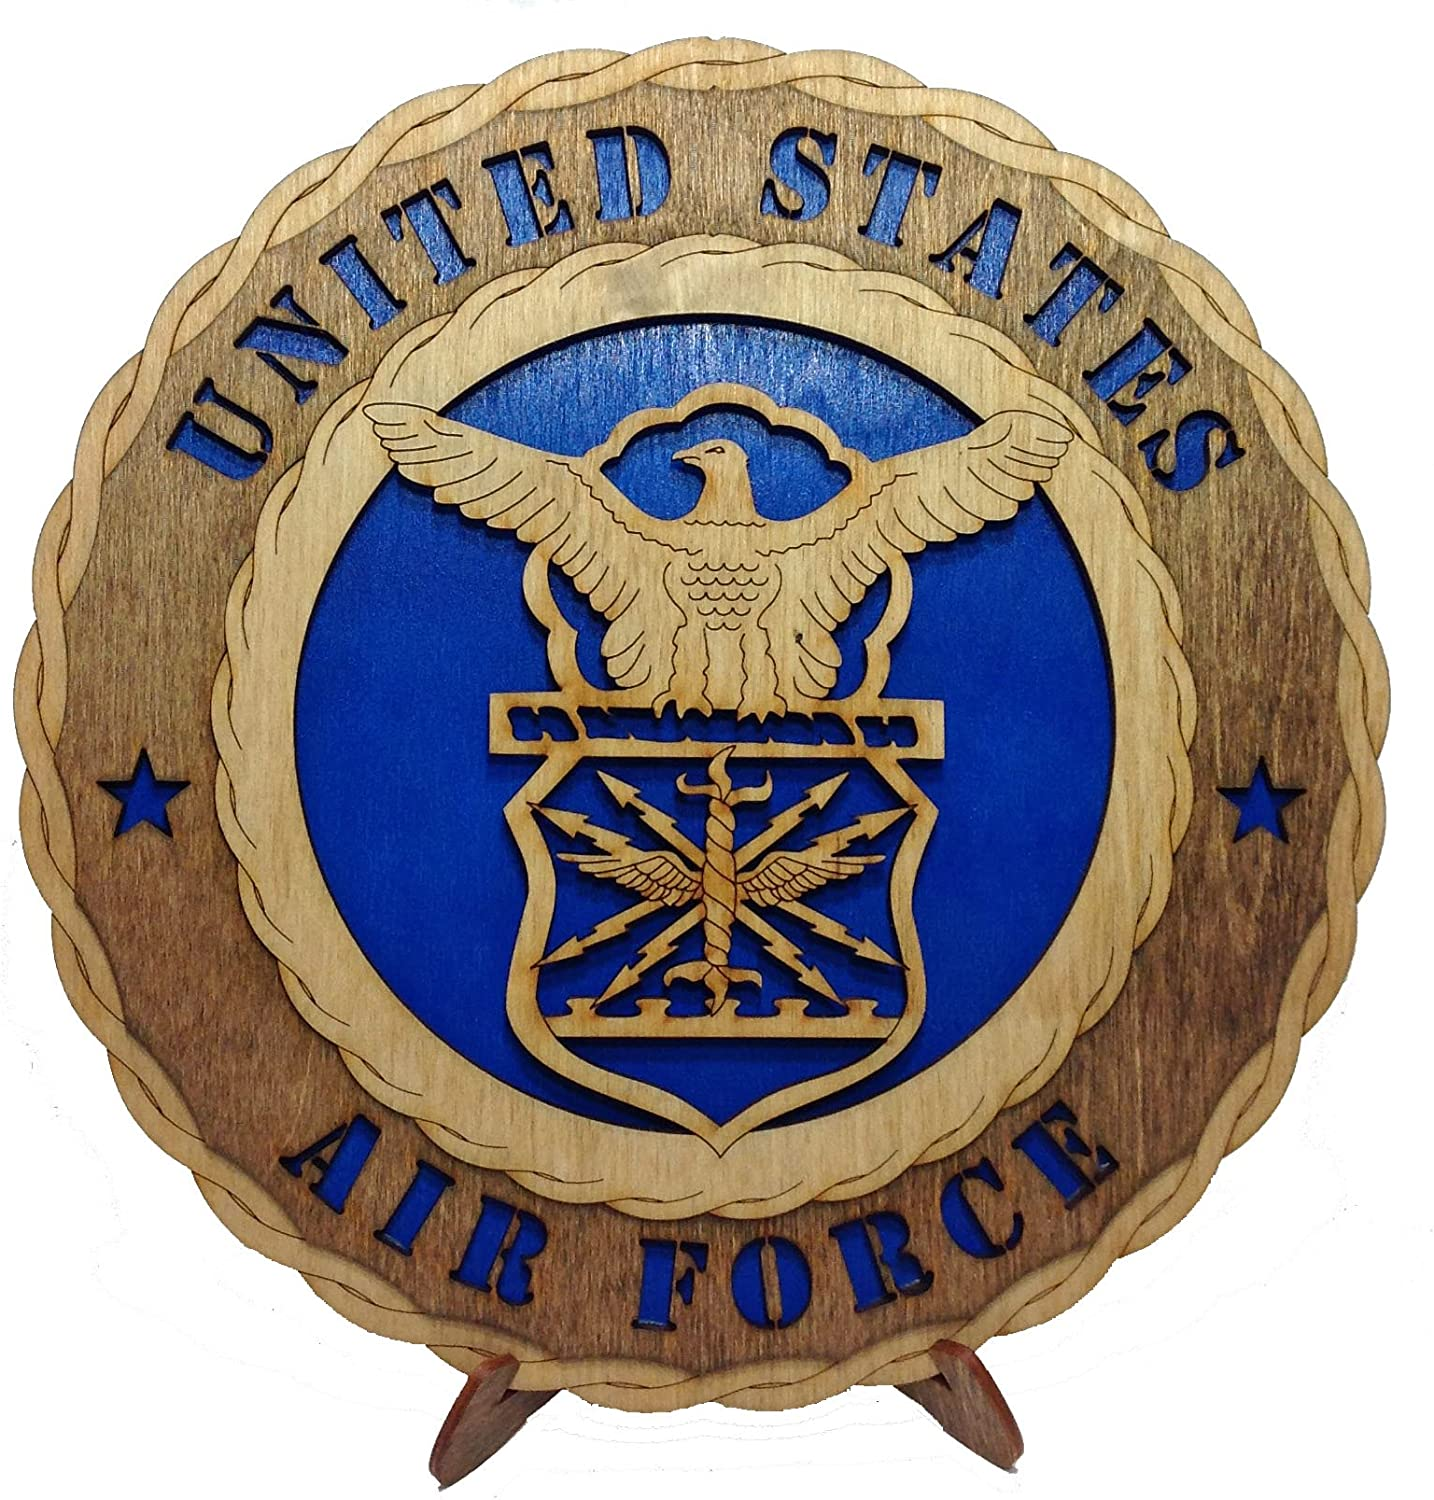 Unique Decorative Custom Laser Crafted Three Dimensional Wooden Wall Plaque - Armed Forces Air Force